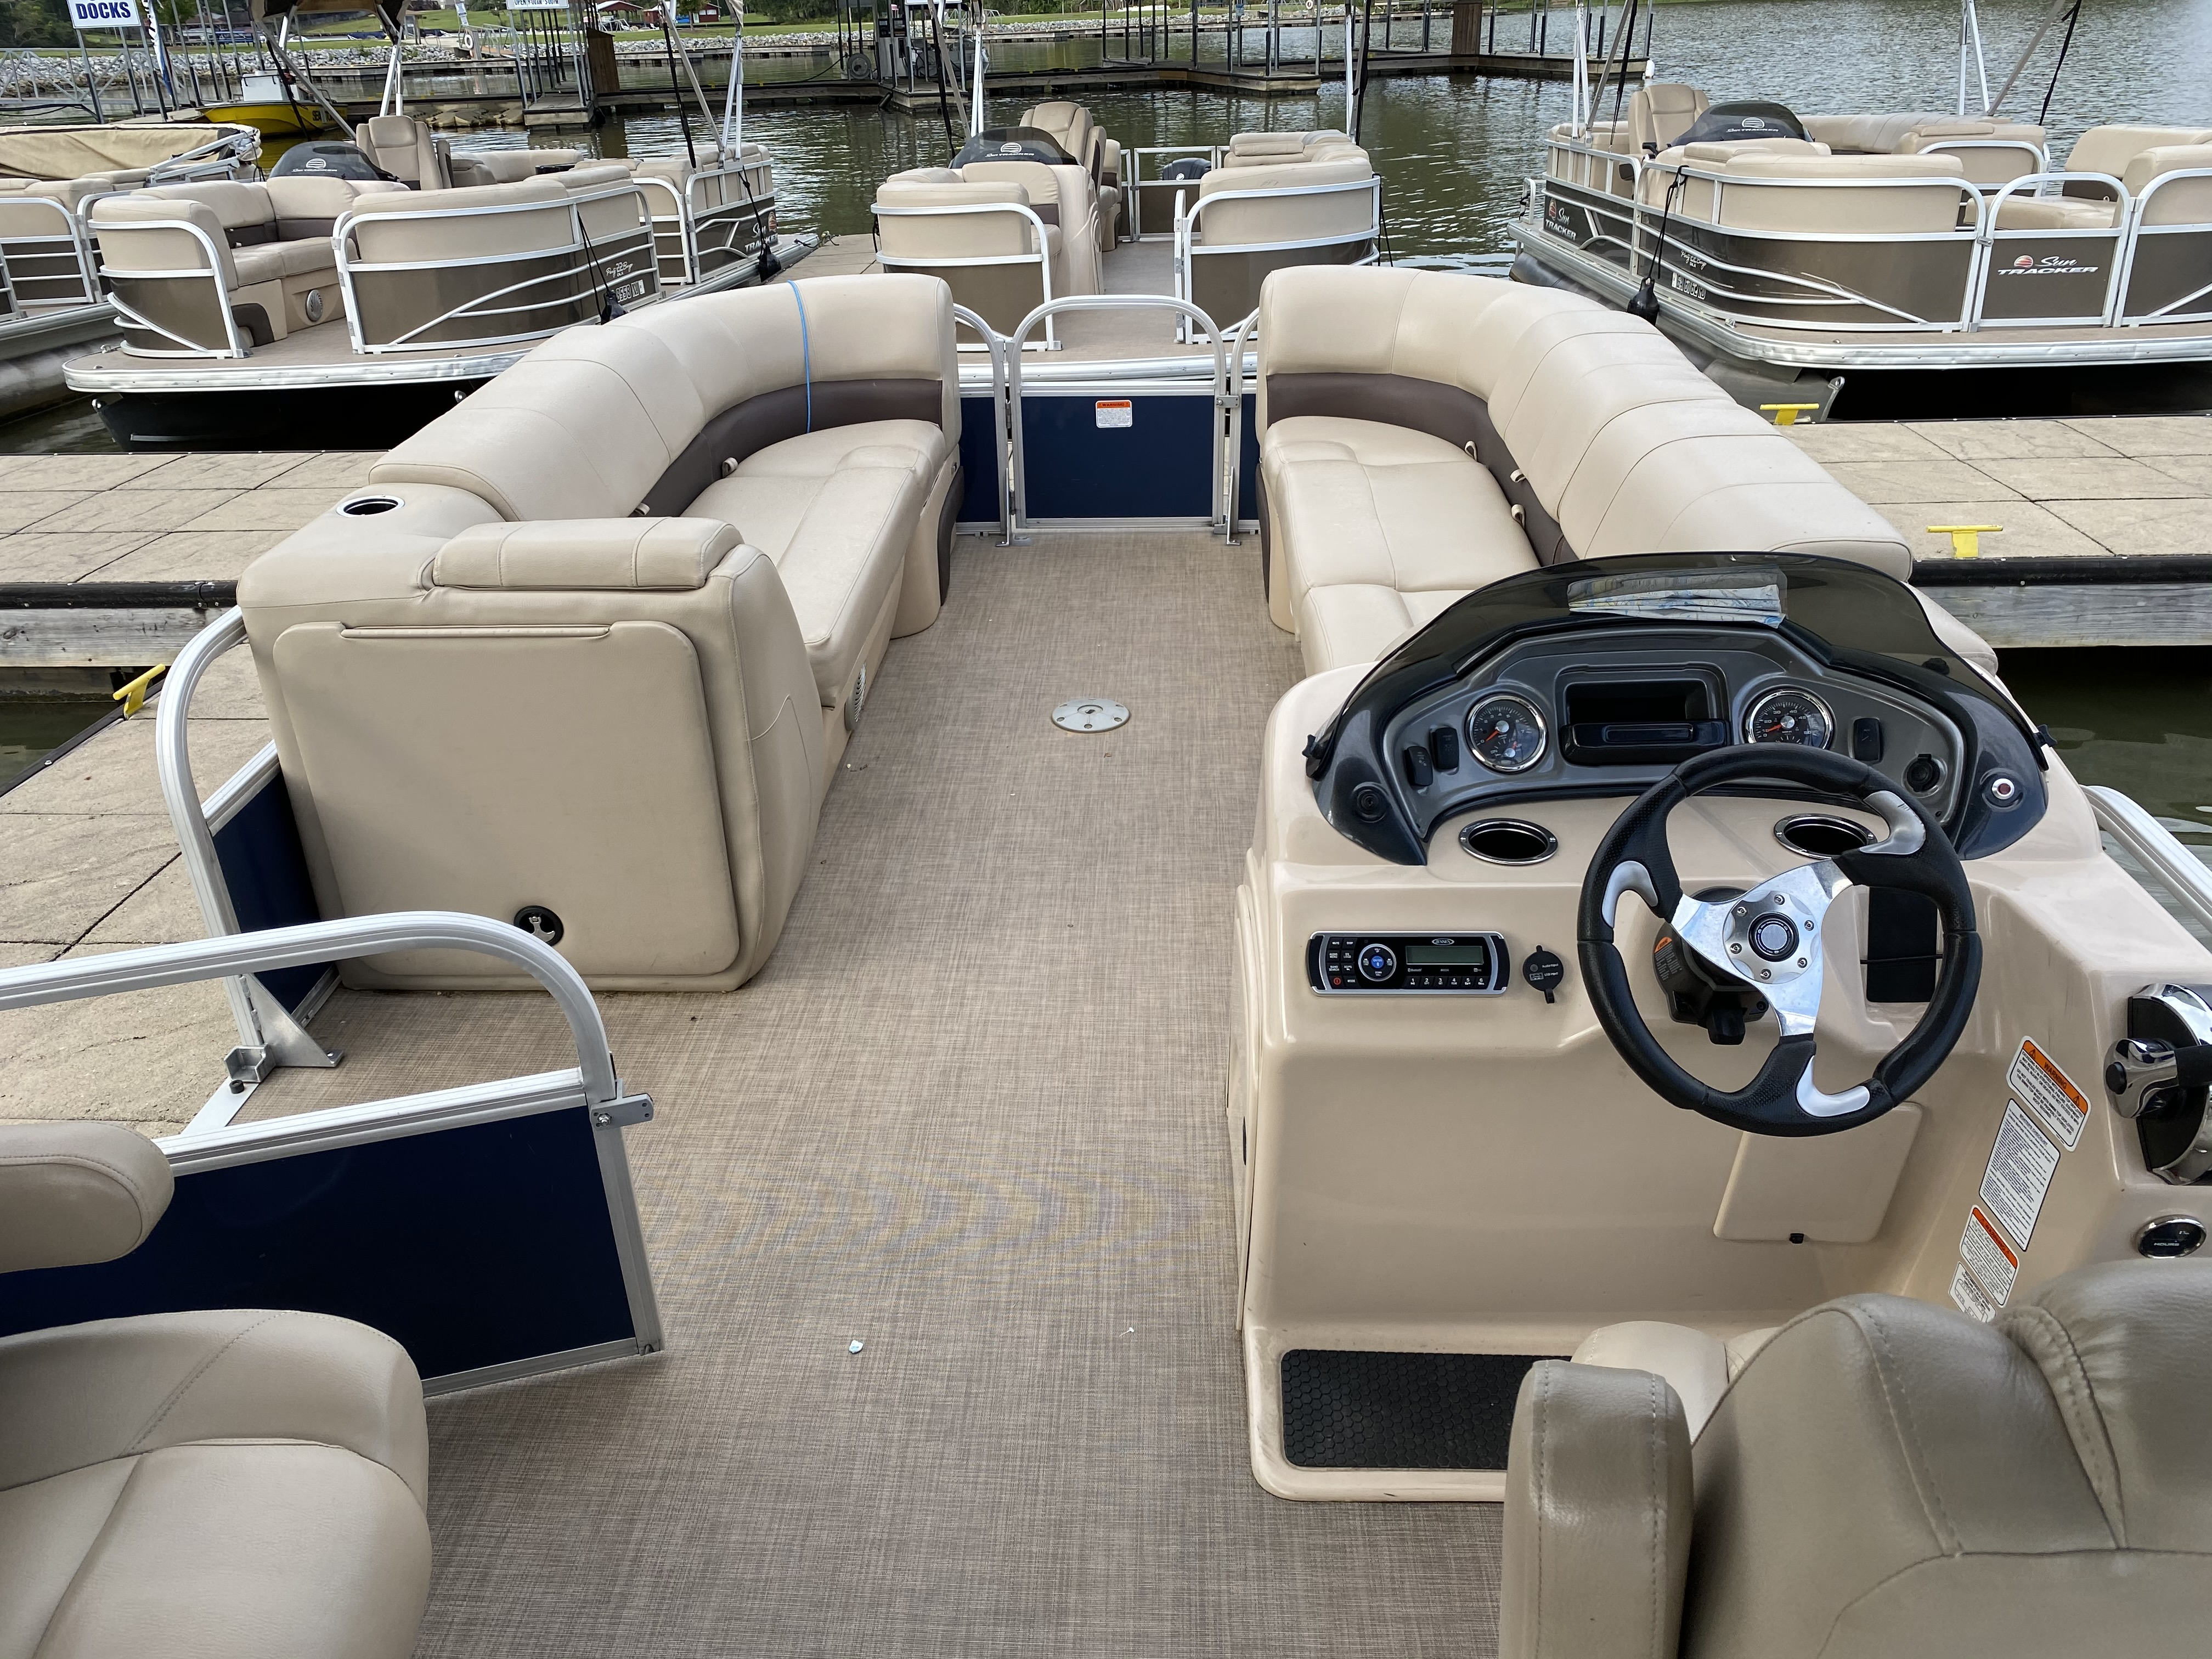 2019 Sun Tracker boat for sale, model of the boat is PARTY BARGE 24 XP3 w/ Mercury 150Hp 4S & Image # 24 of 24